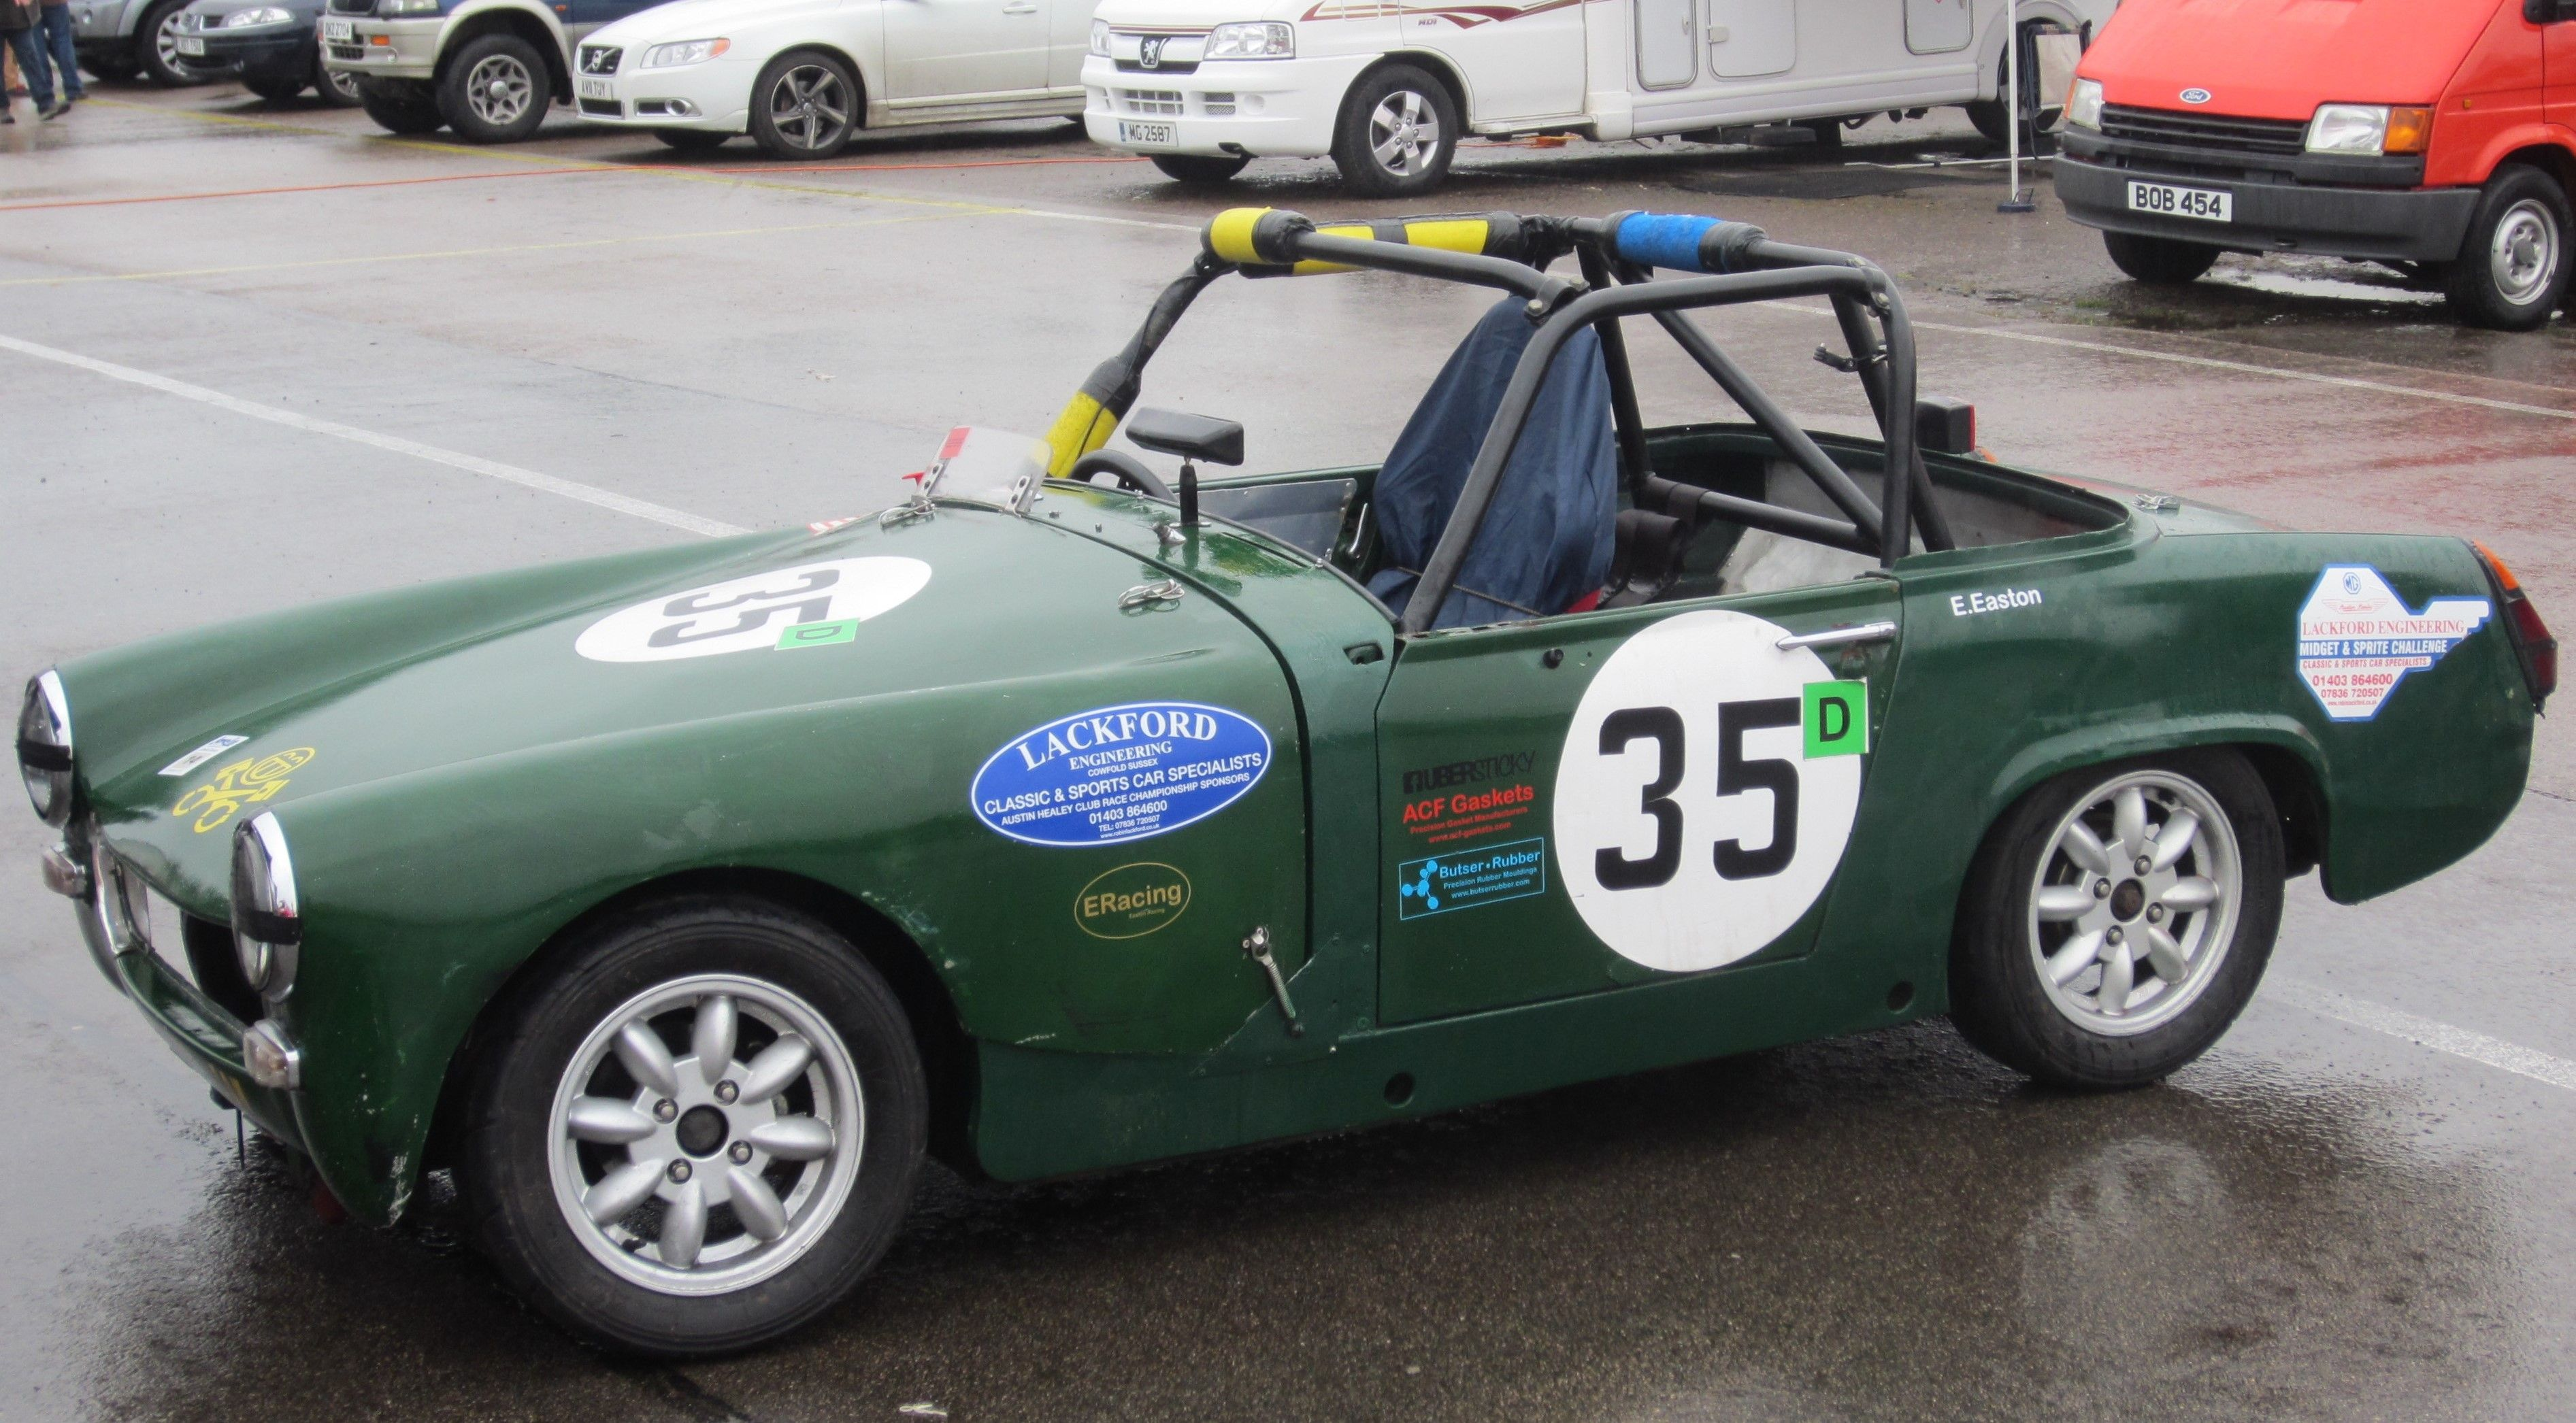 Mg midget roster, video wife cigar exhale